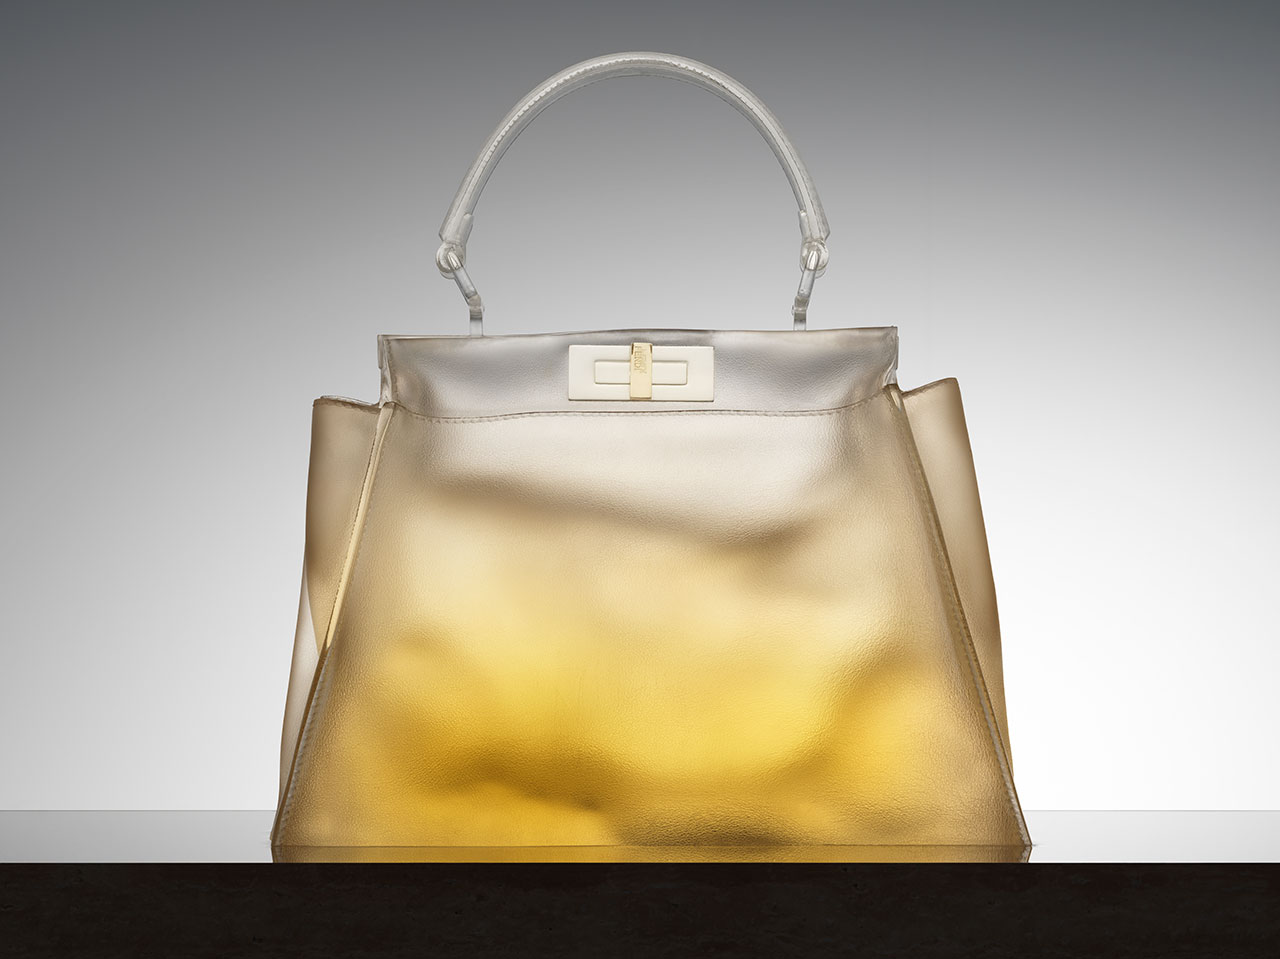 Peekaboo Bag. Photo by Carl Kleiner, courtesy of FENDI.